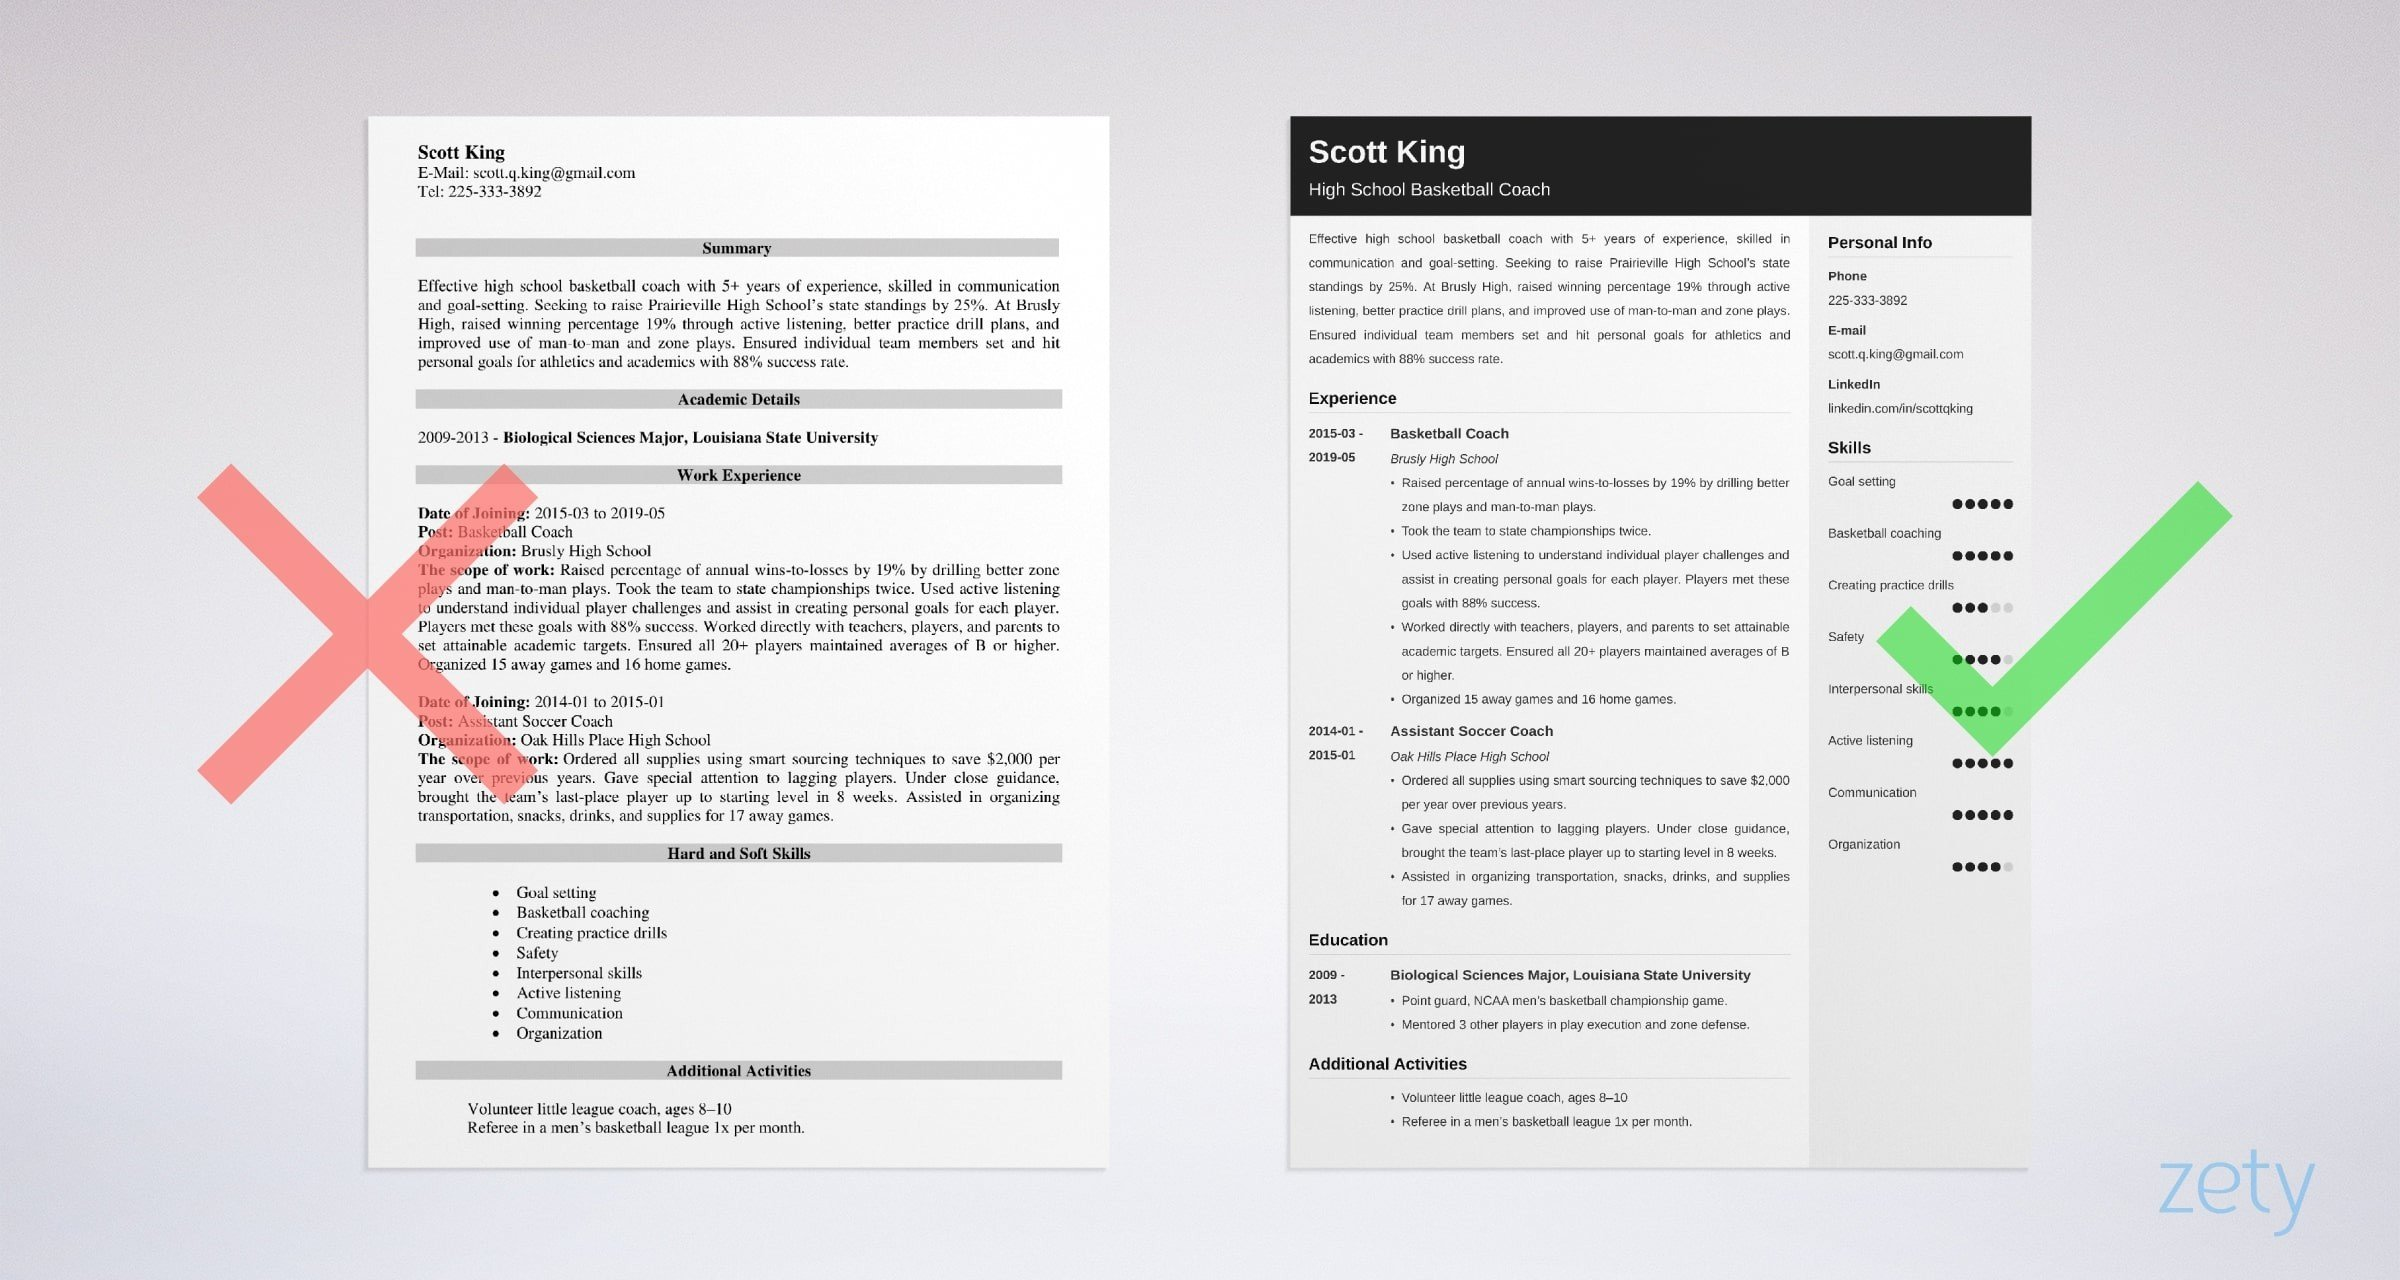 coaching resume samples also for high school coach jobs objective example cognos tm1 job Resume Objective For Coaching Resume